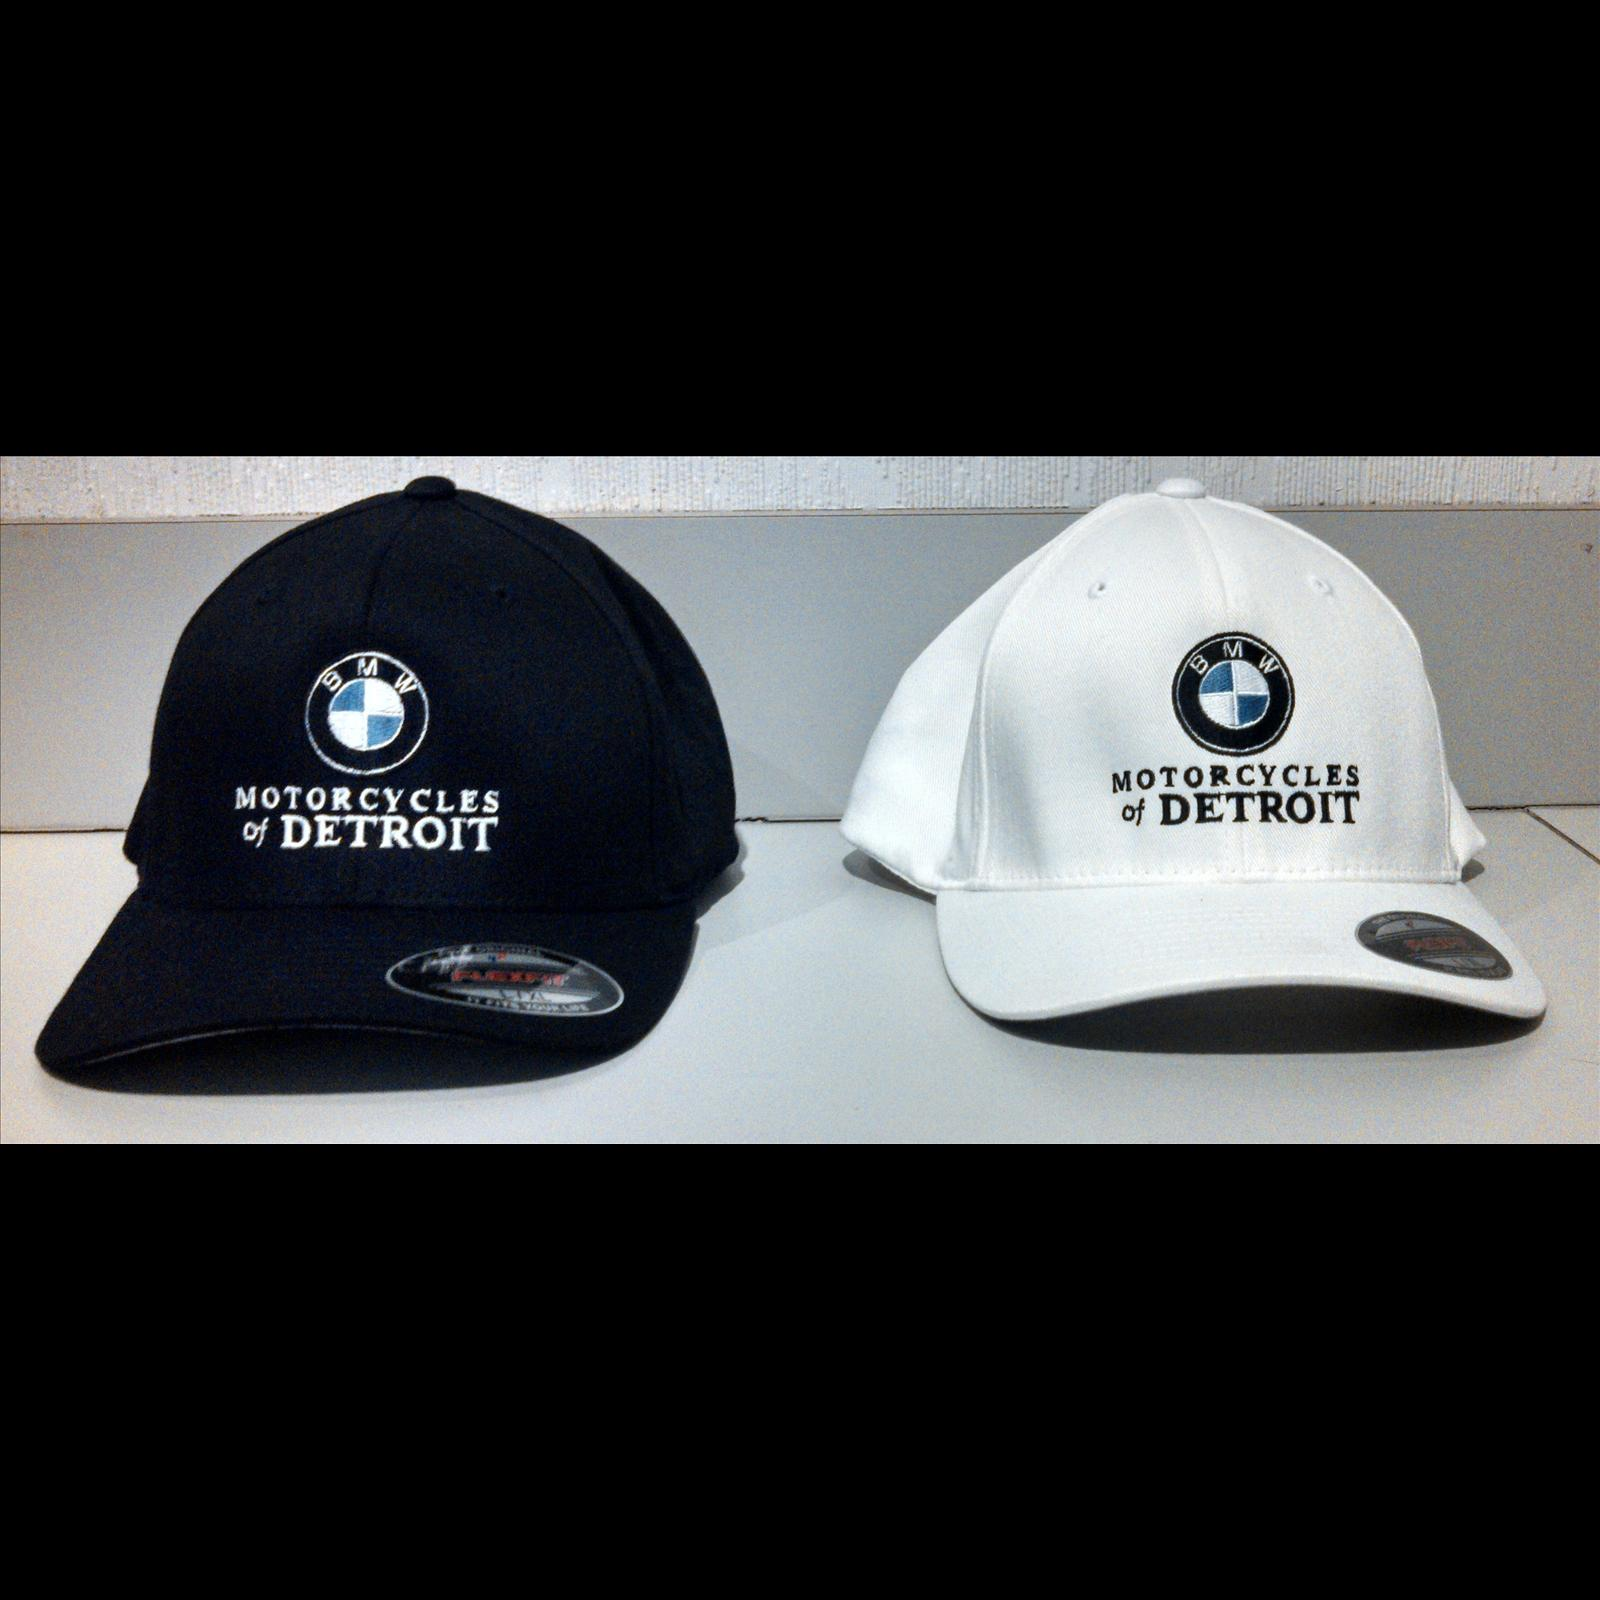 baseball caps for sale in sterling heights, mi | bmw motorcycles